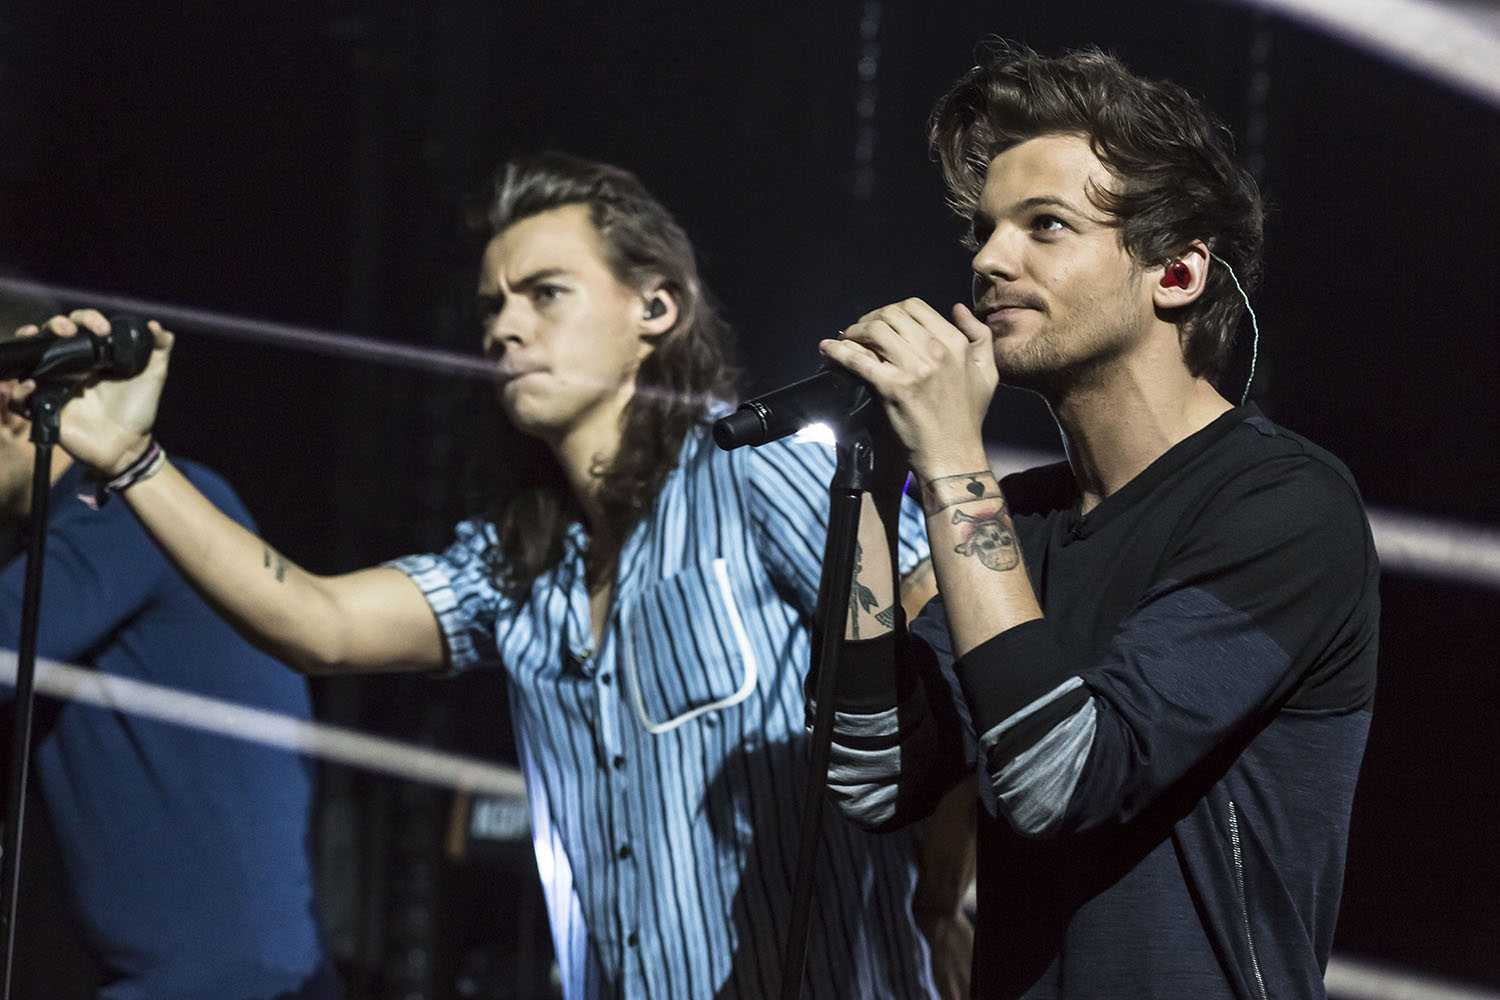 Louis Tomlinson: Everything you need to know about the One